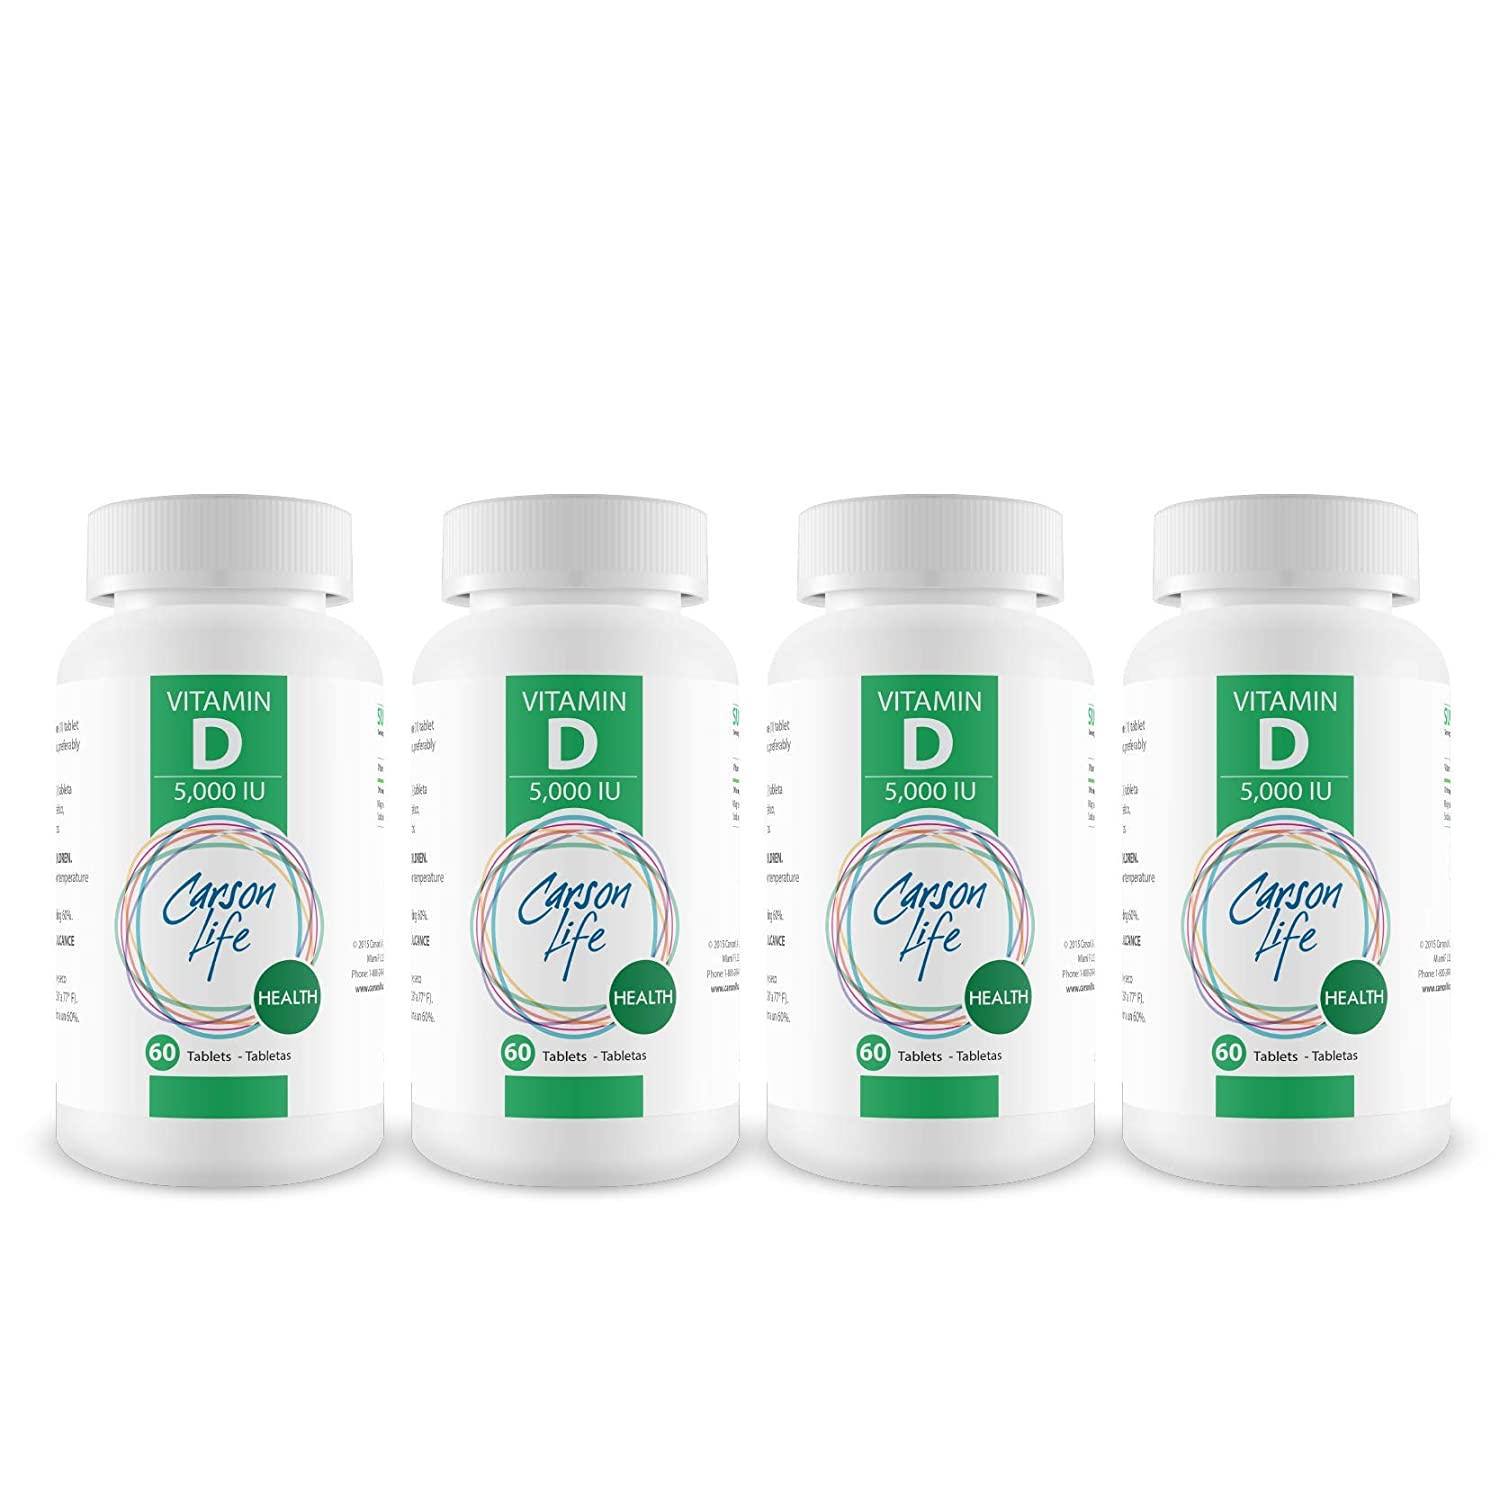 CARSON LIFE Vitamin D 5000 IU Tablets - 4 Pack, 60 Tablets Each - for Stronger Muscles, Bones, Teeth and a Healthier Immune System - Made in The USA